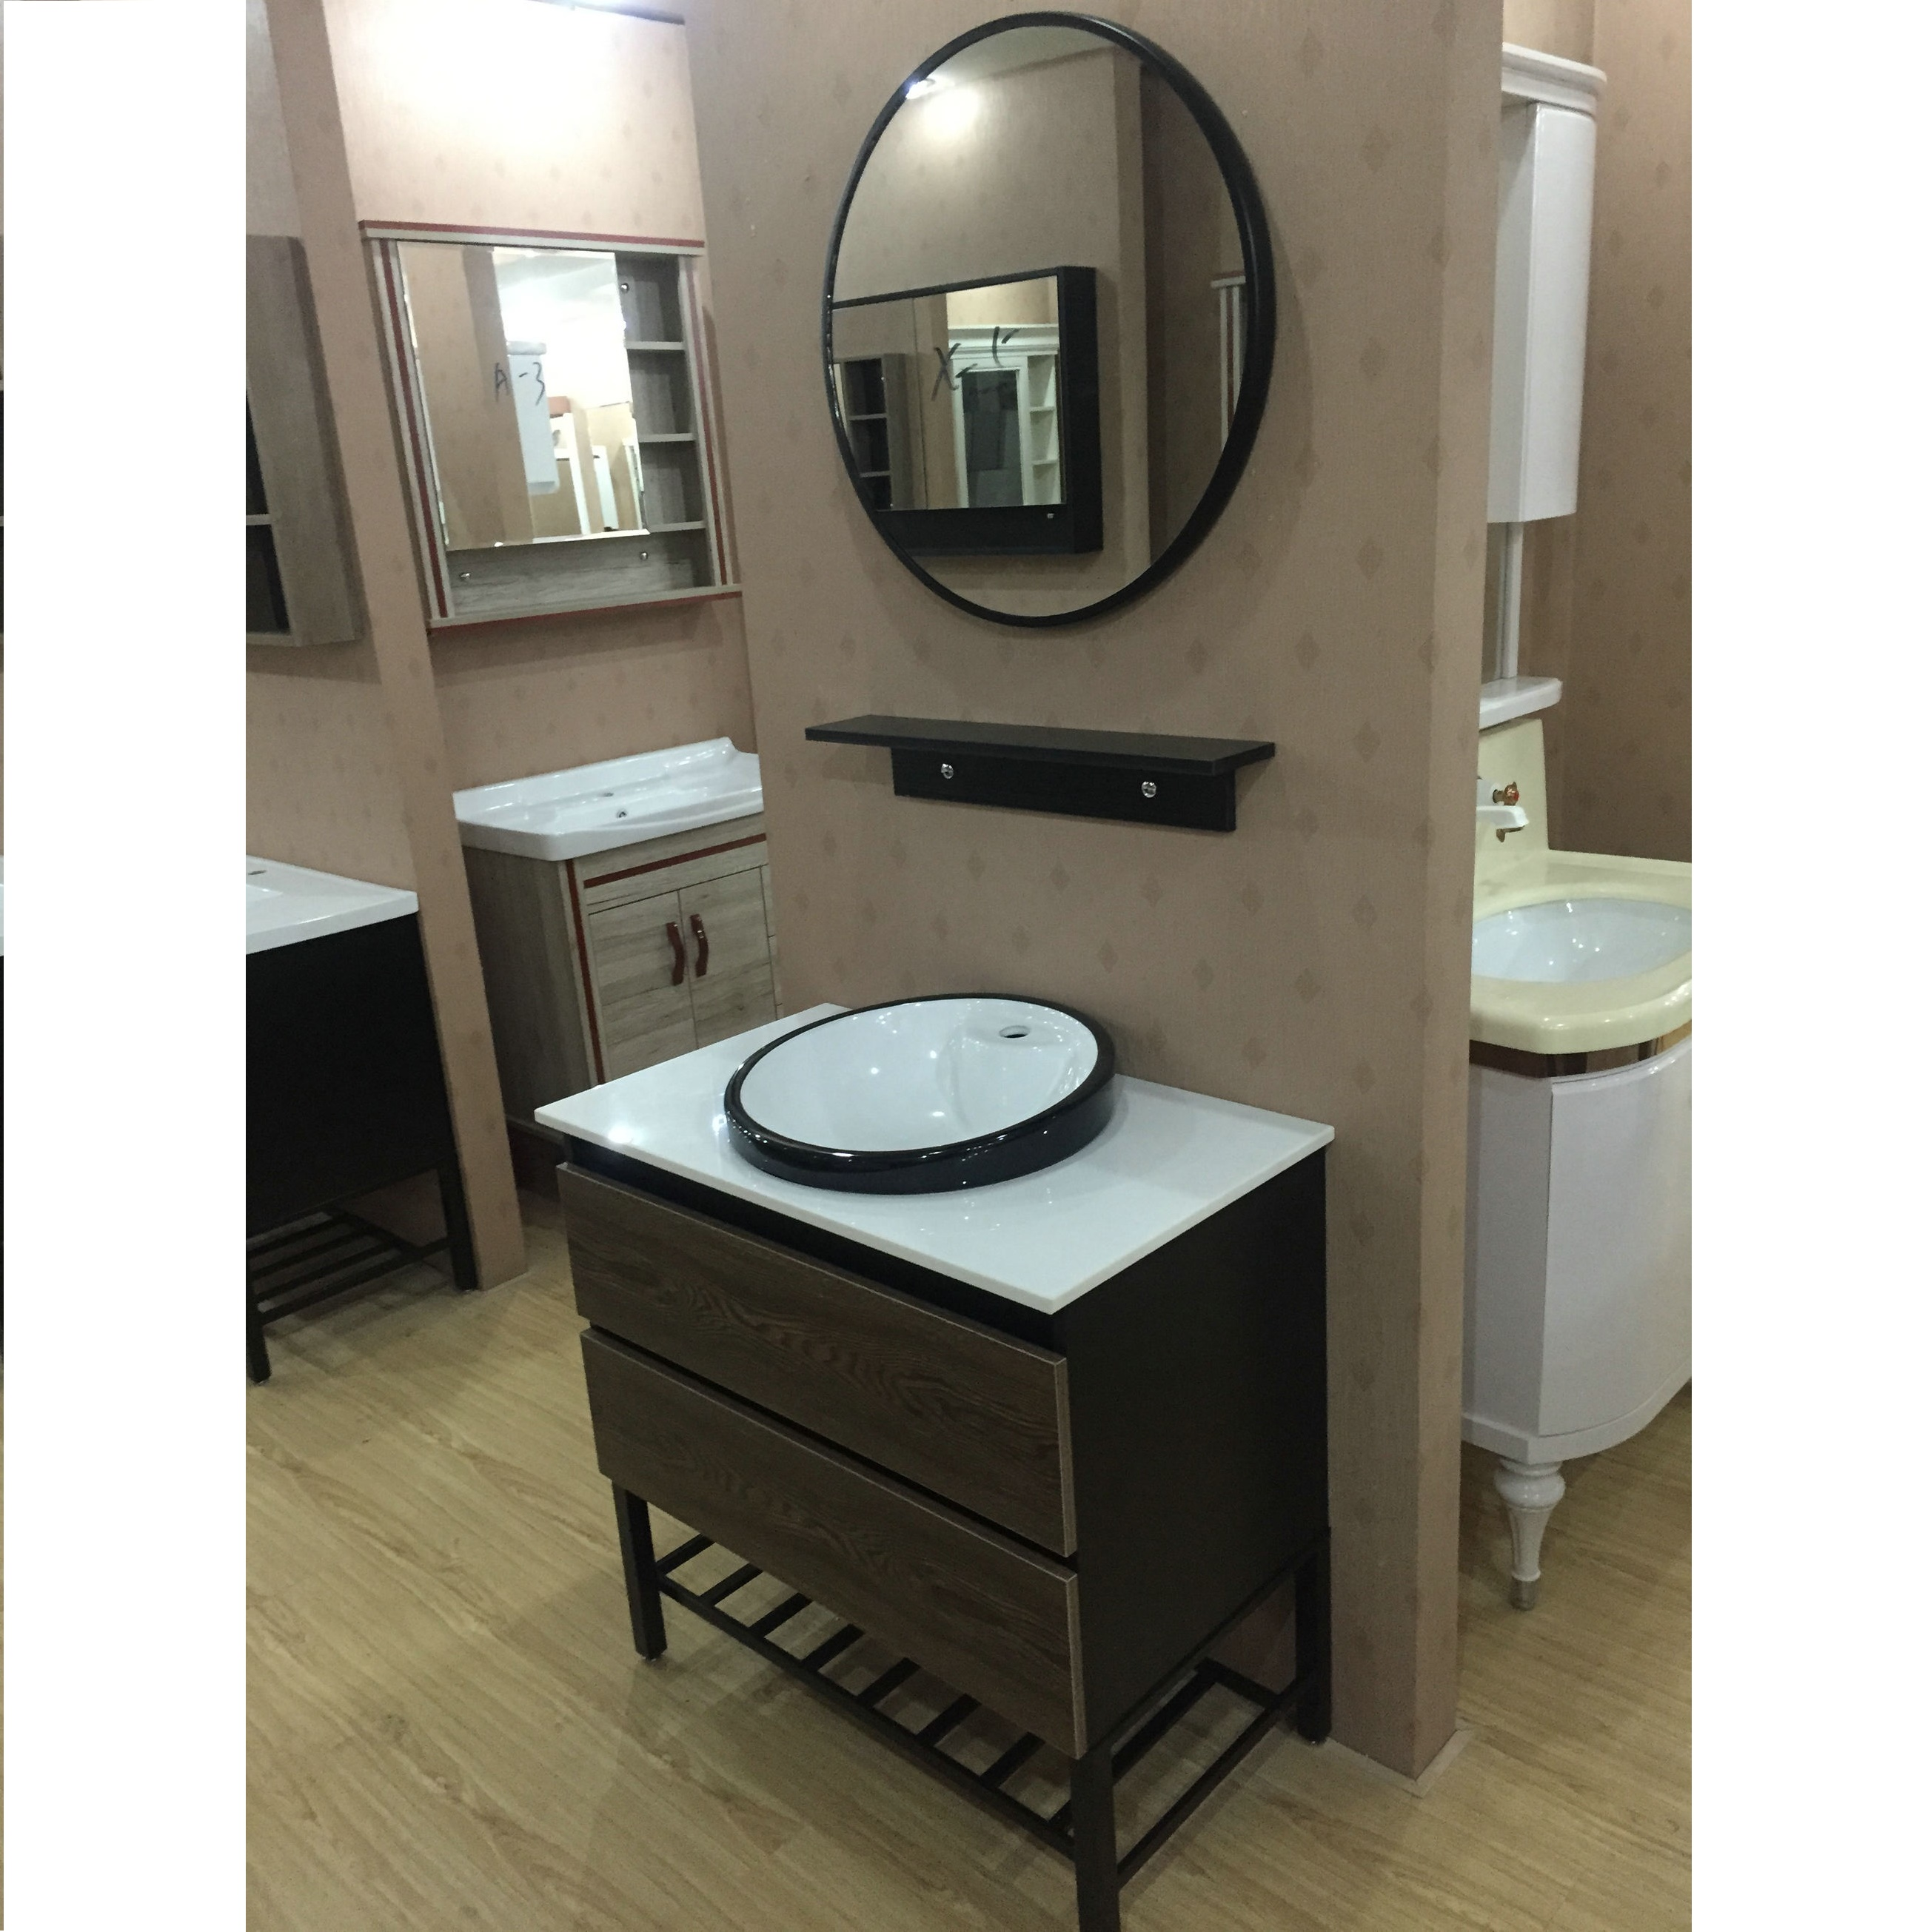 80cm bathroom vanity cabinet with counter top and above in basin and metal shelf legs